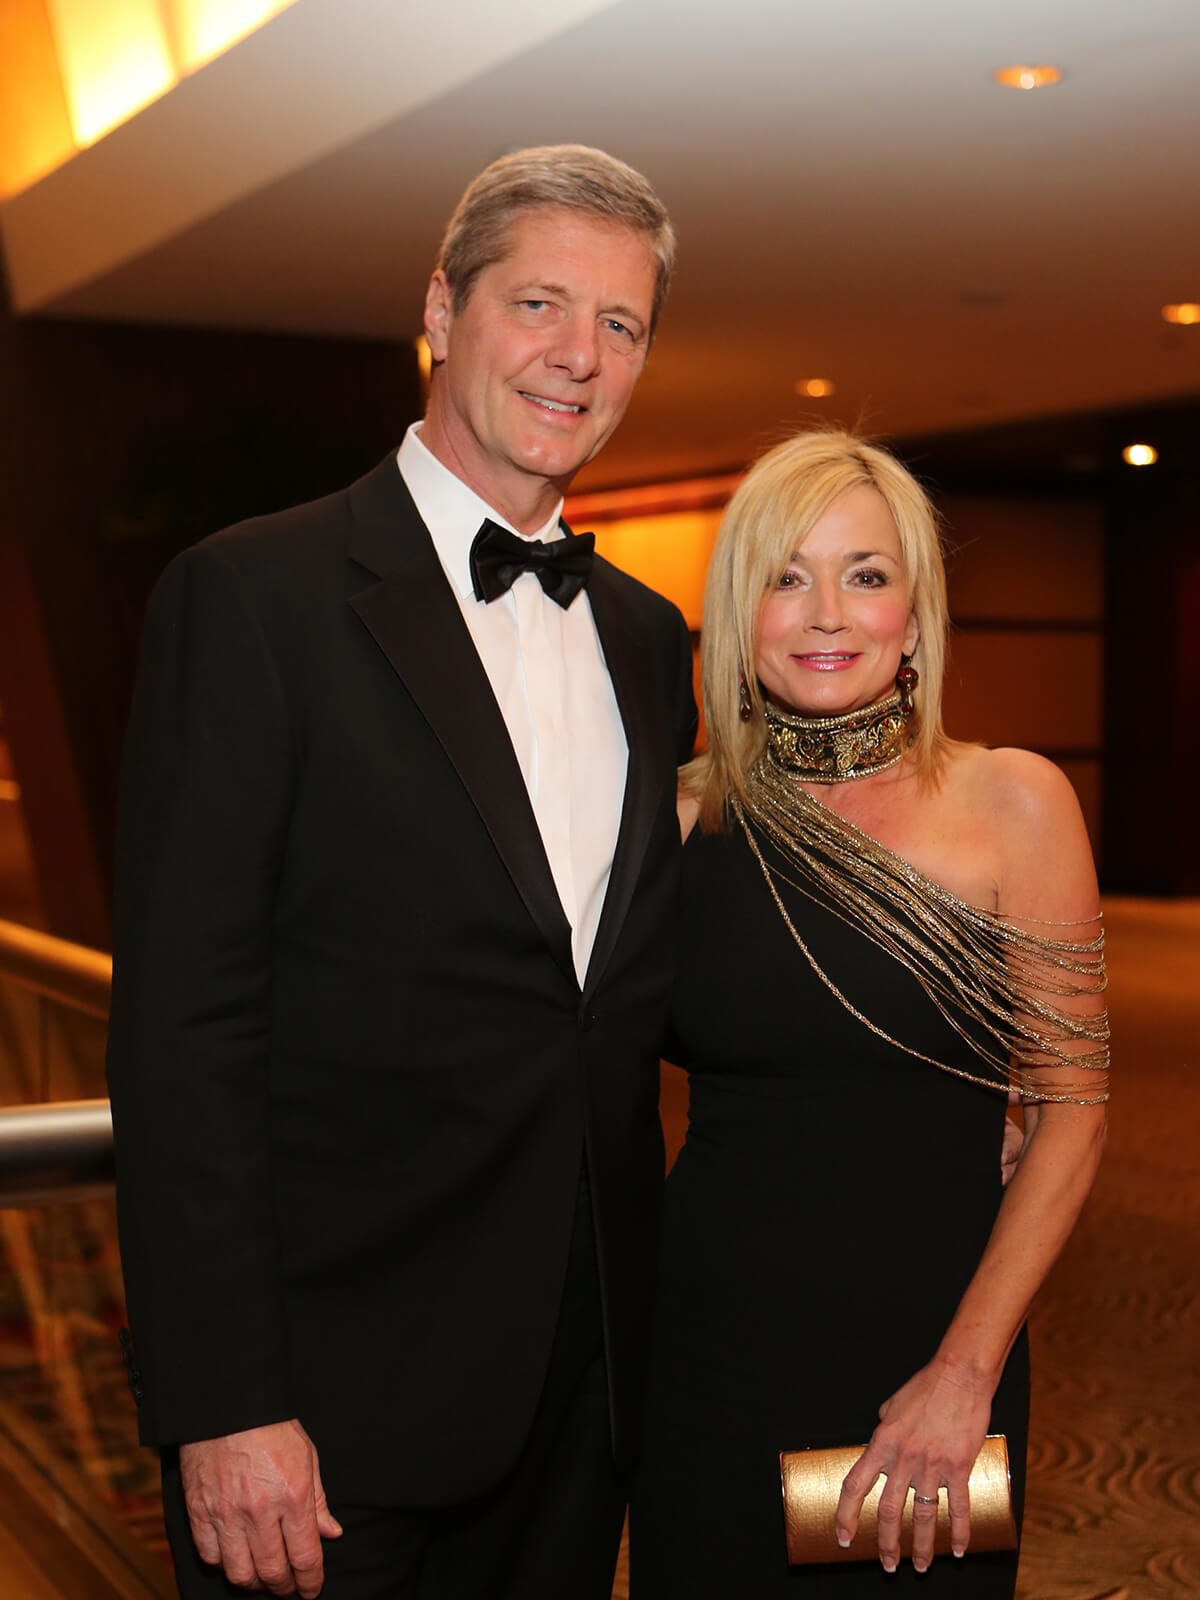 Bobby and Wezy Dees at the Winter Ball January 2014